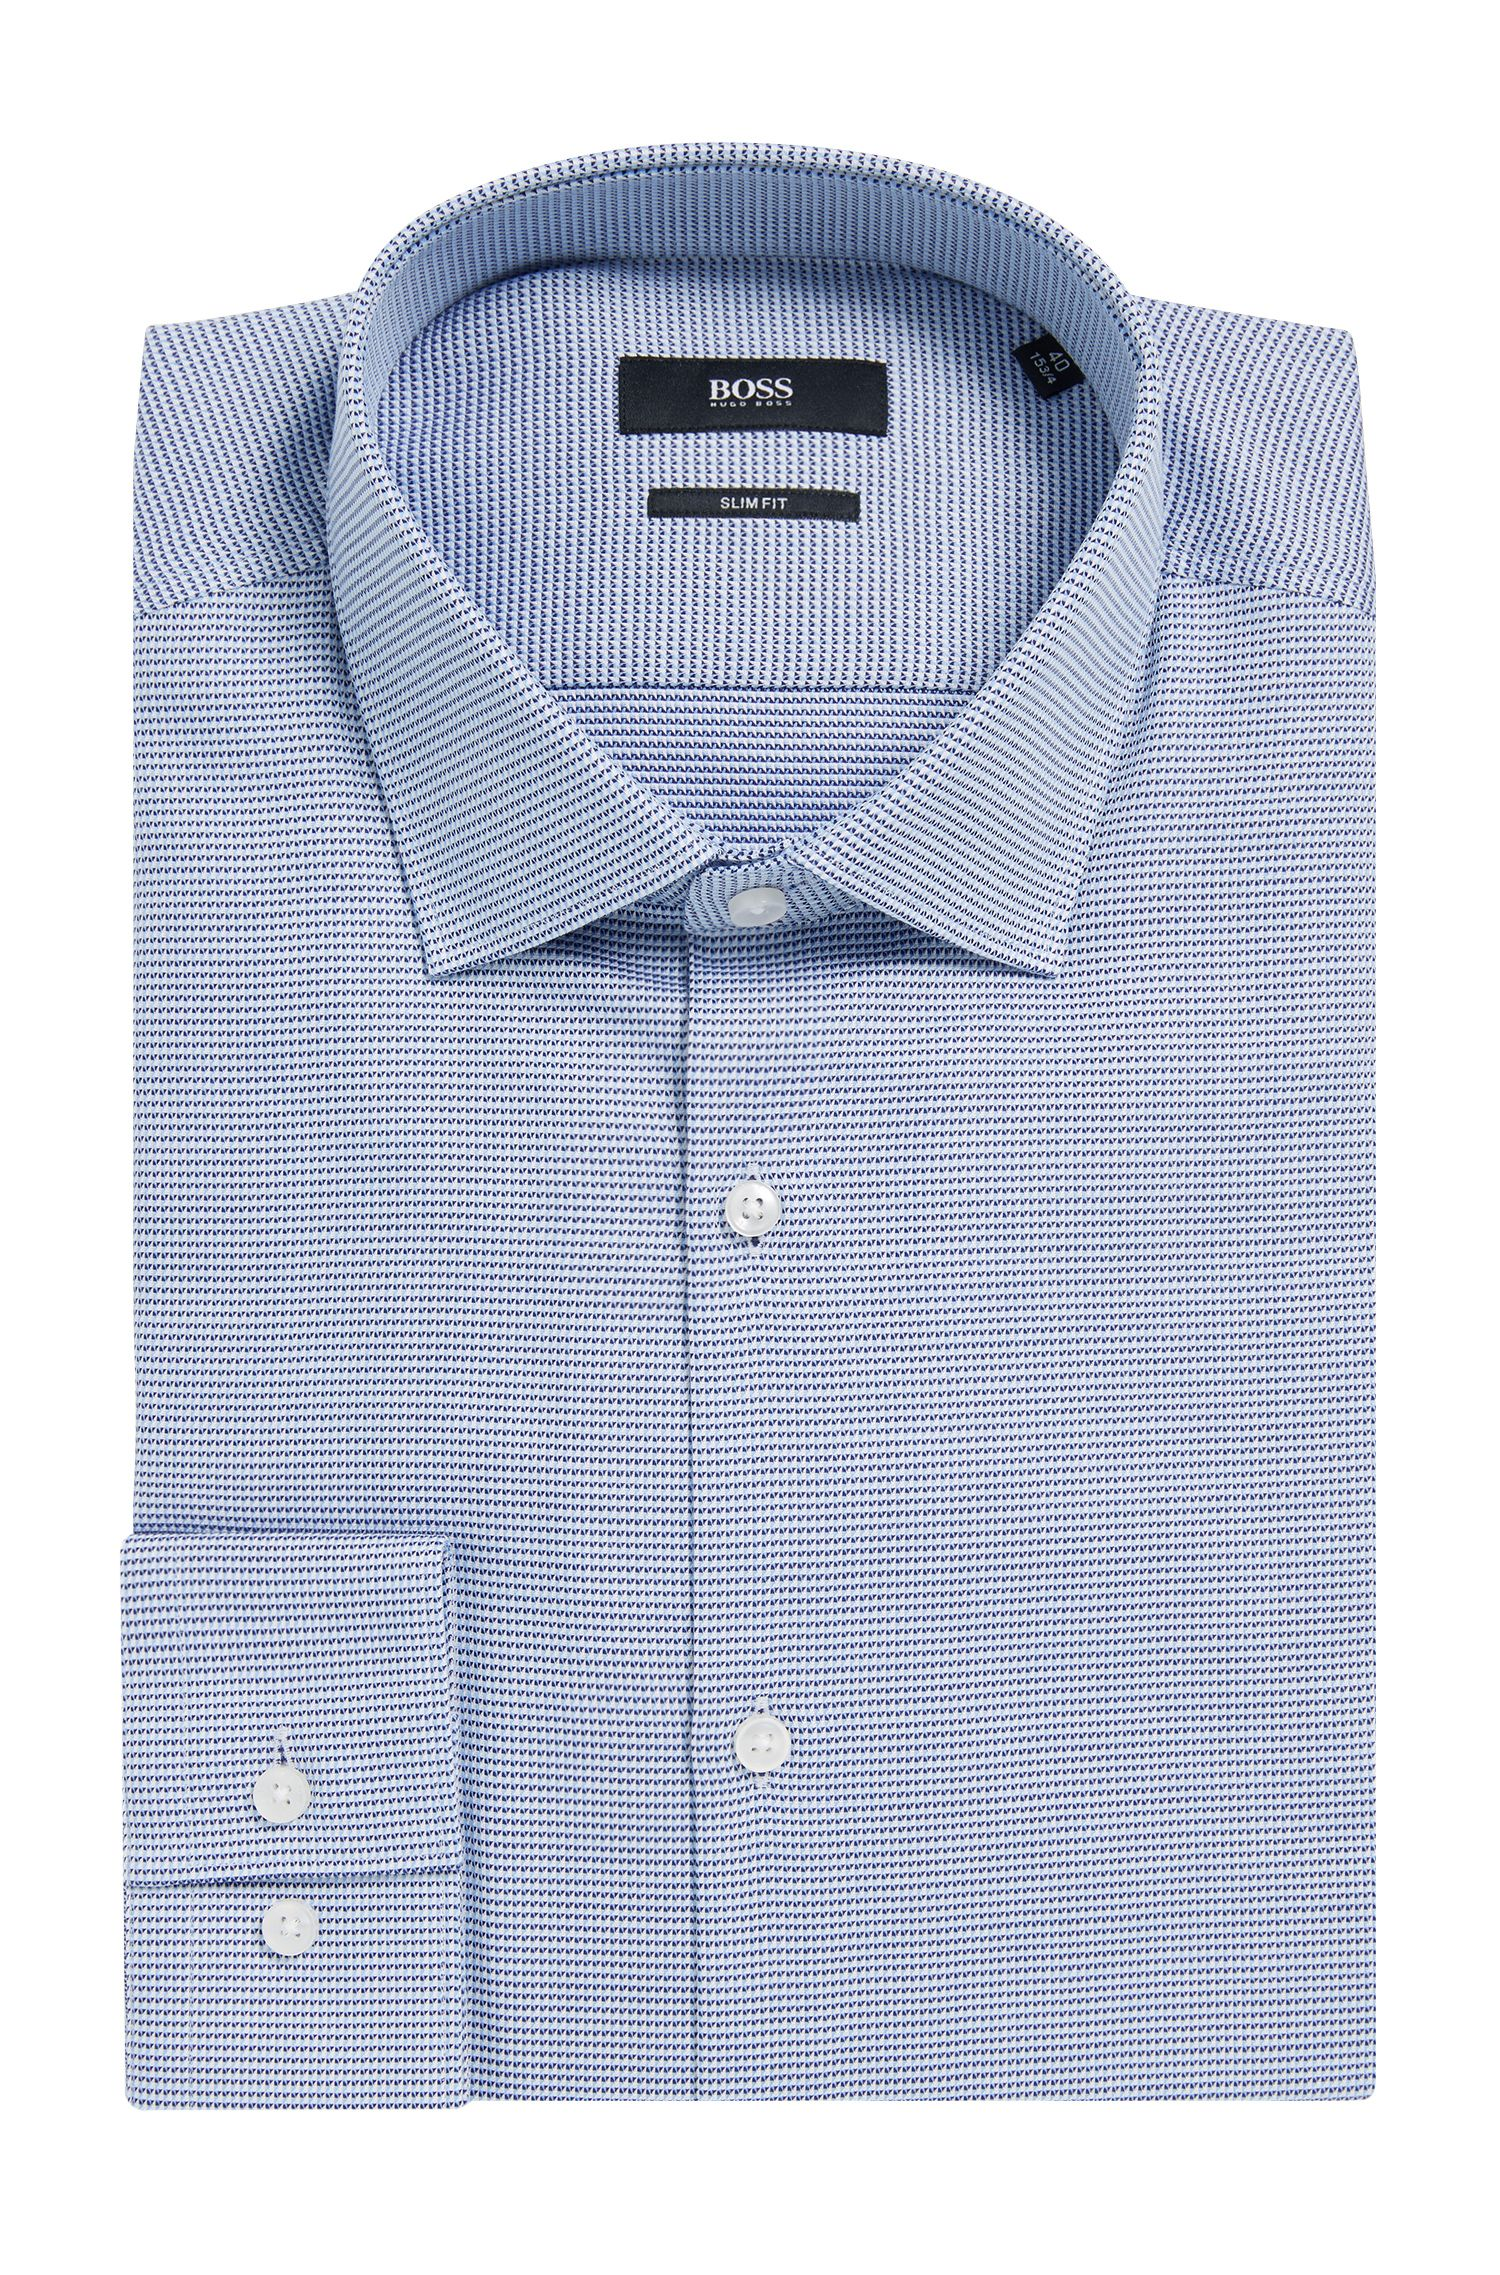 Pin-check Cotton Dress Shirt, Slim Fit | Ismo, Dark Blue